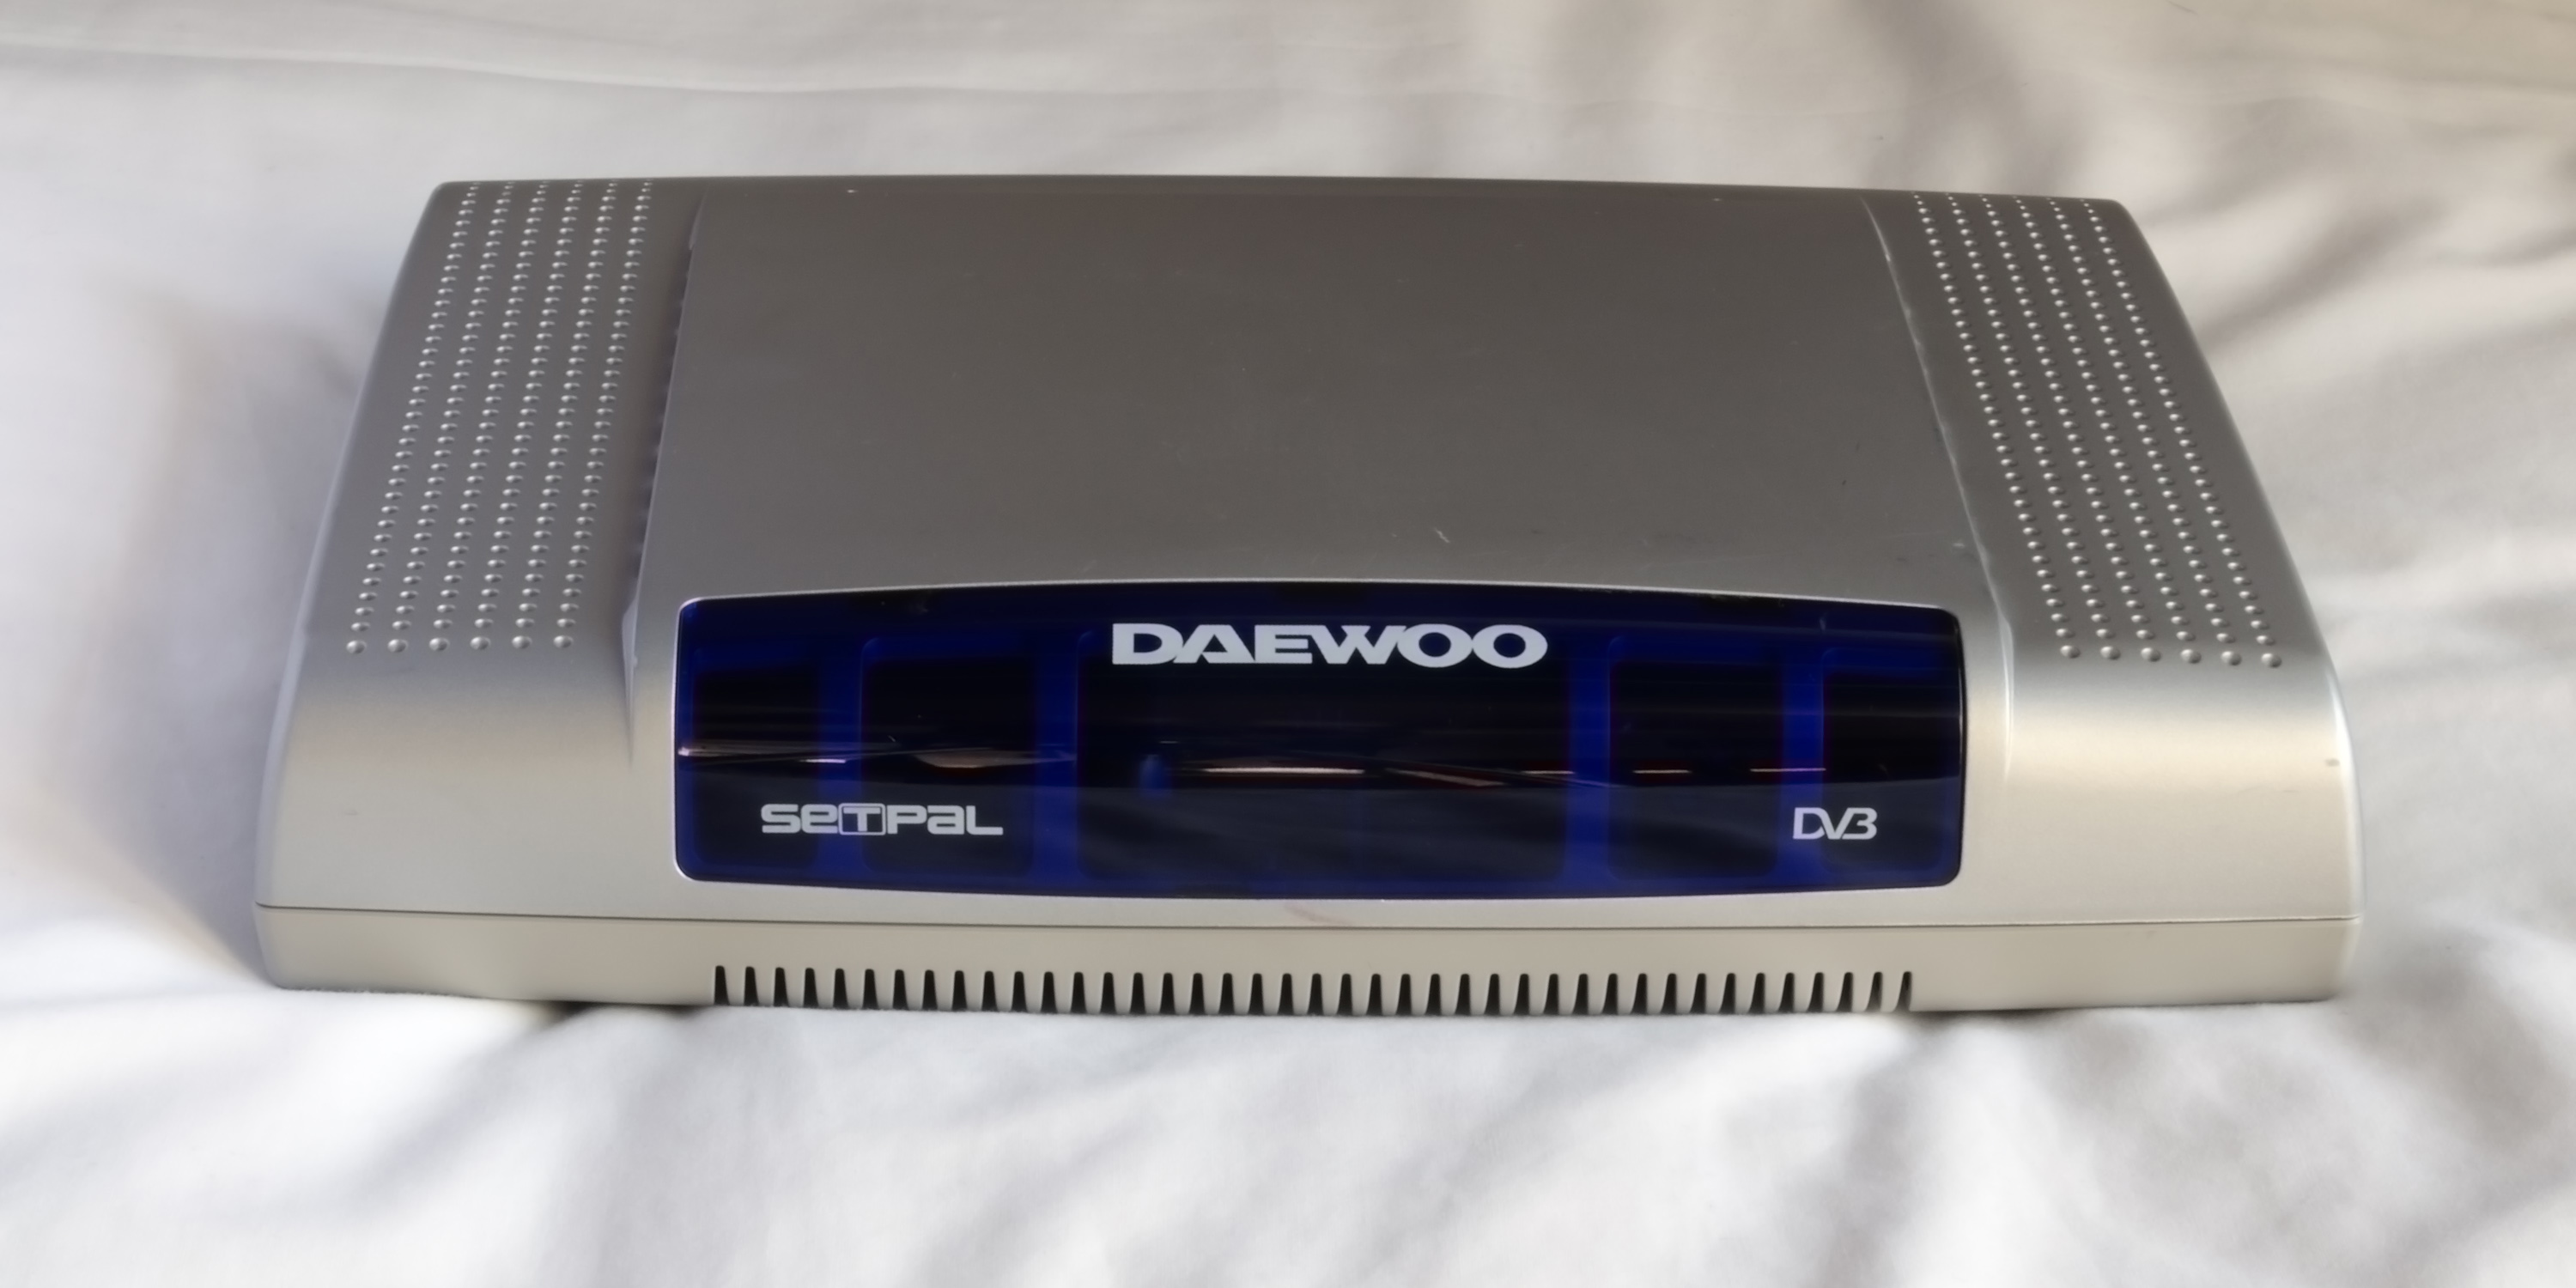 File:Daewoo DS608P Freeview DVB-T set top box (front and top)